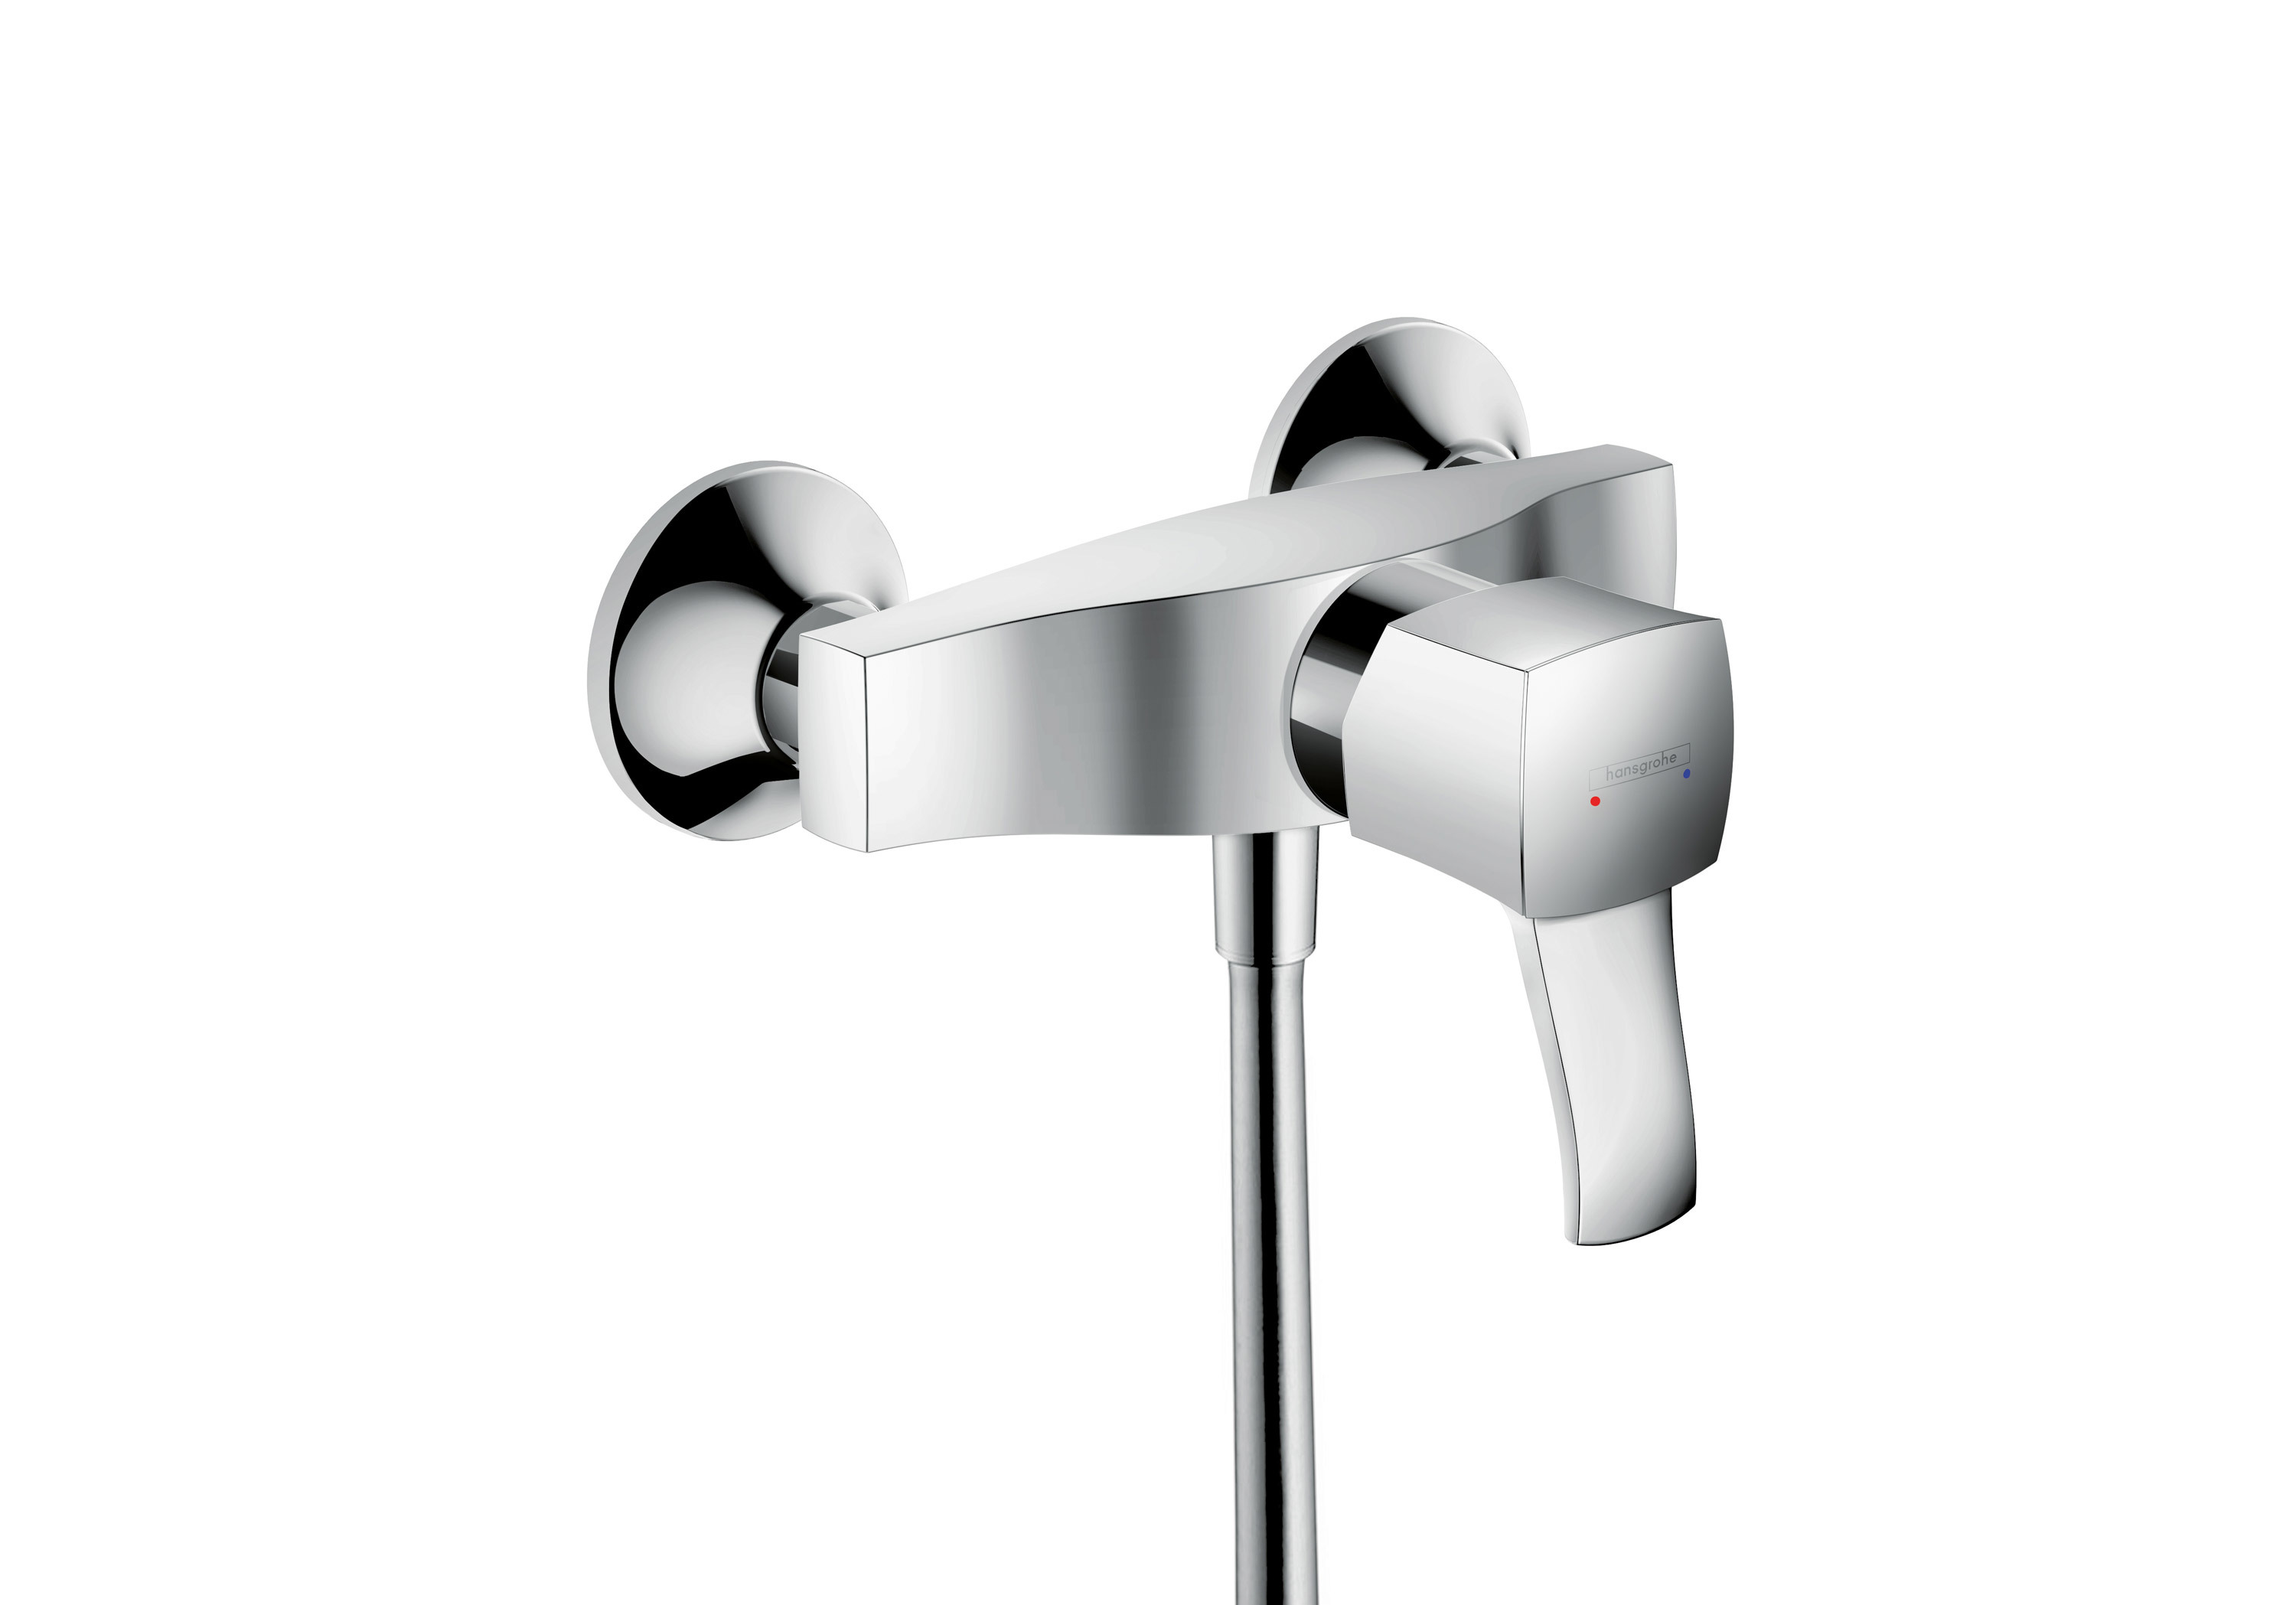 Metropol Classic Shower Mixer exposed by Hansgrohe | STYLEPARK